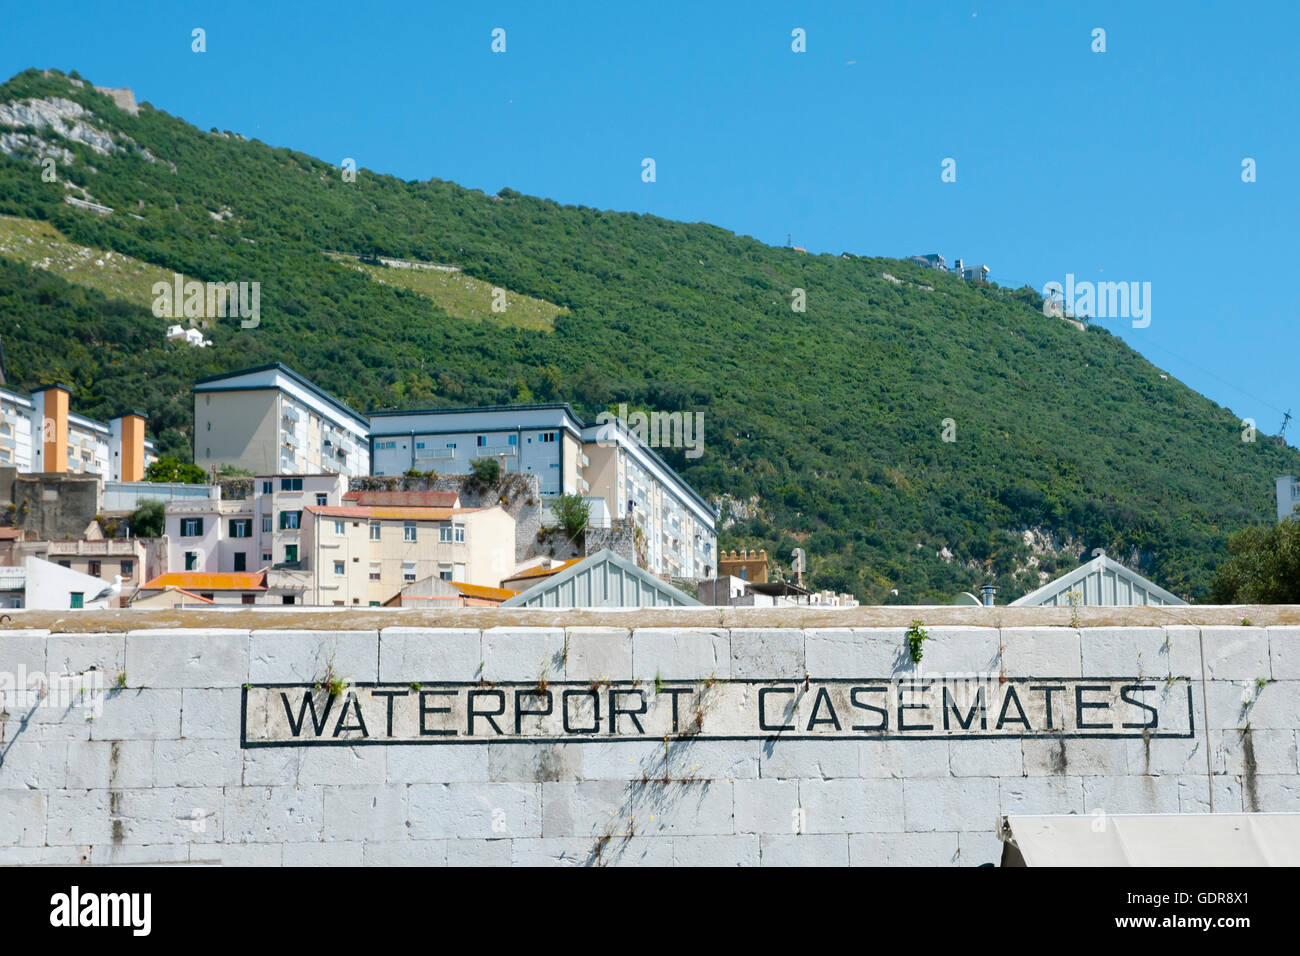 Waterport Casemates Wall - Gibraltar - Stock Image